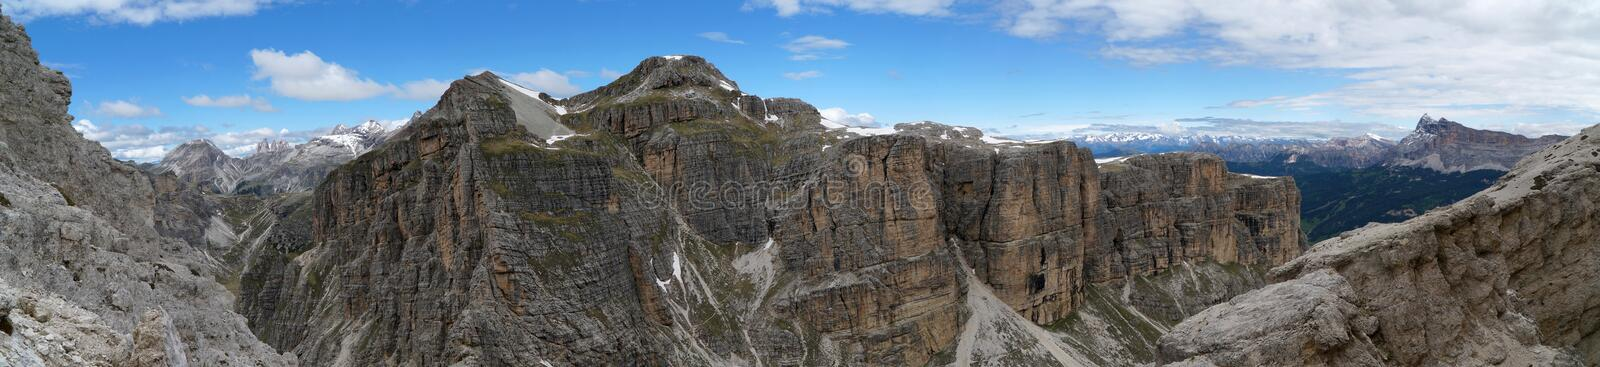 Wonderful panoramic view of rugged dolomite mountains in south tyrol royalty free stock image